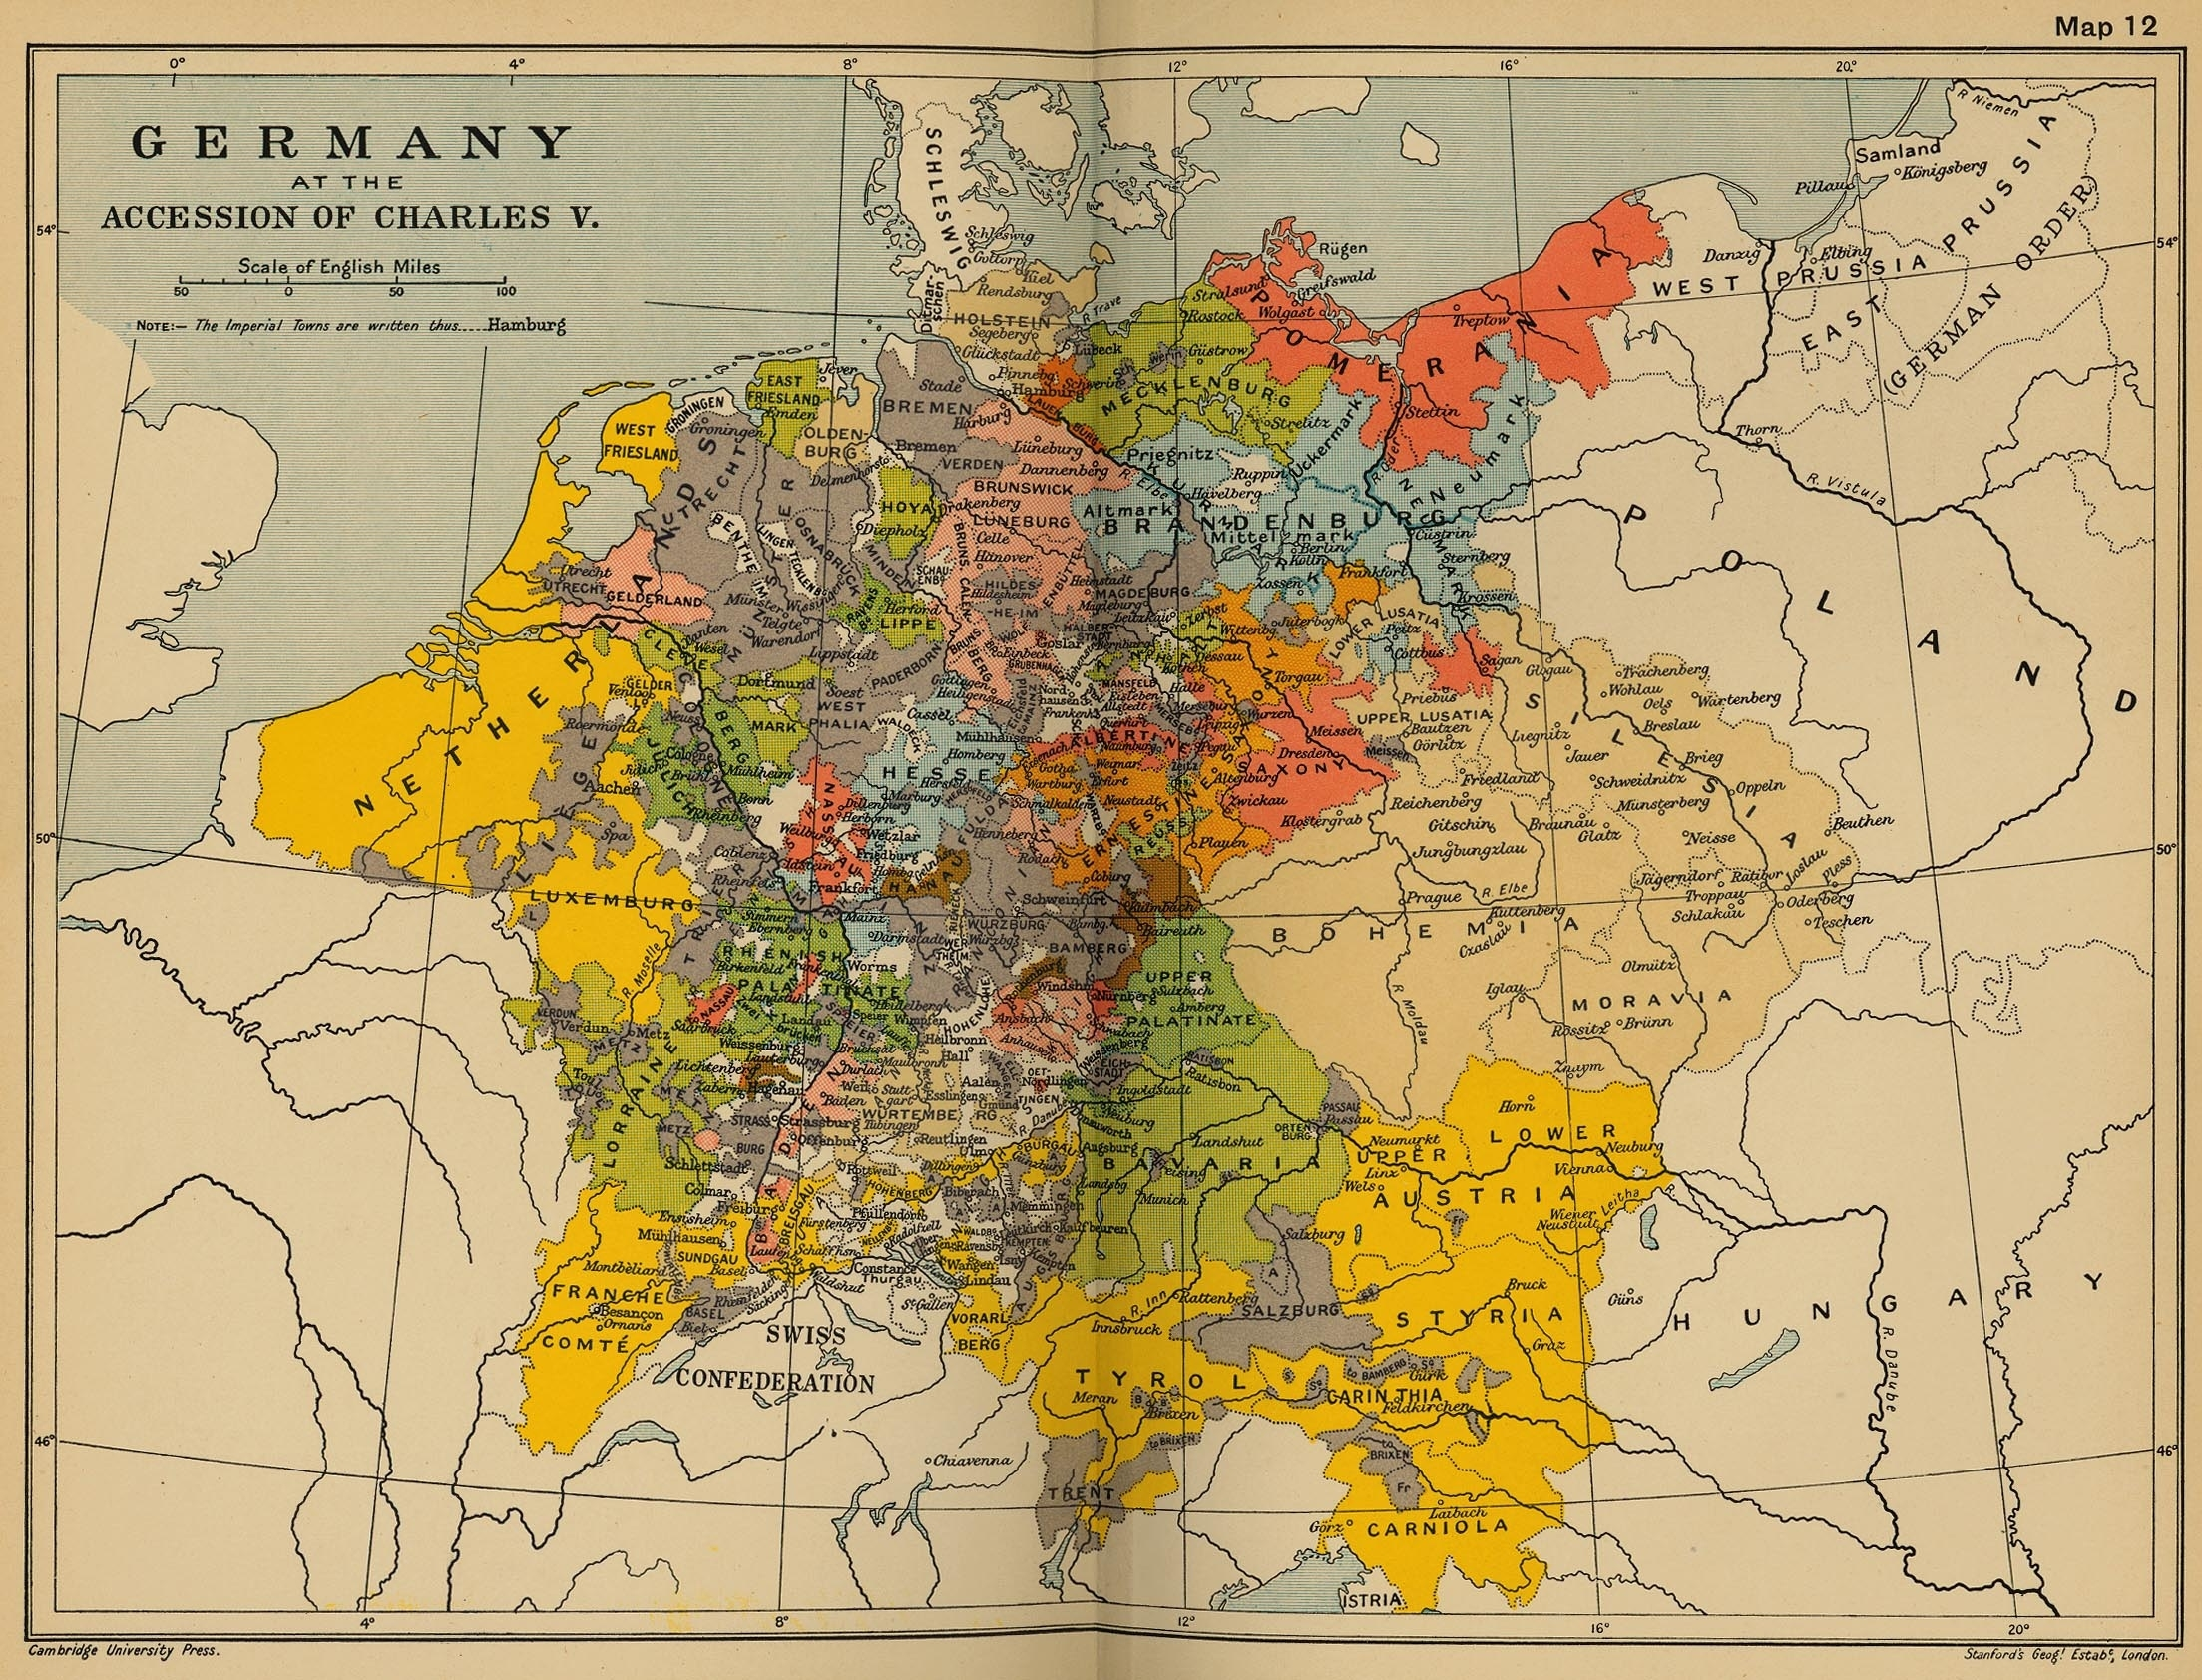 Cambridge Modern History Atlas 1912 - Perry-Castañeda Map Collection for German Map In 1900